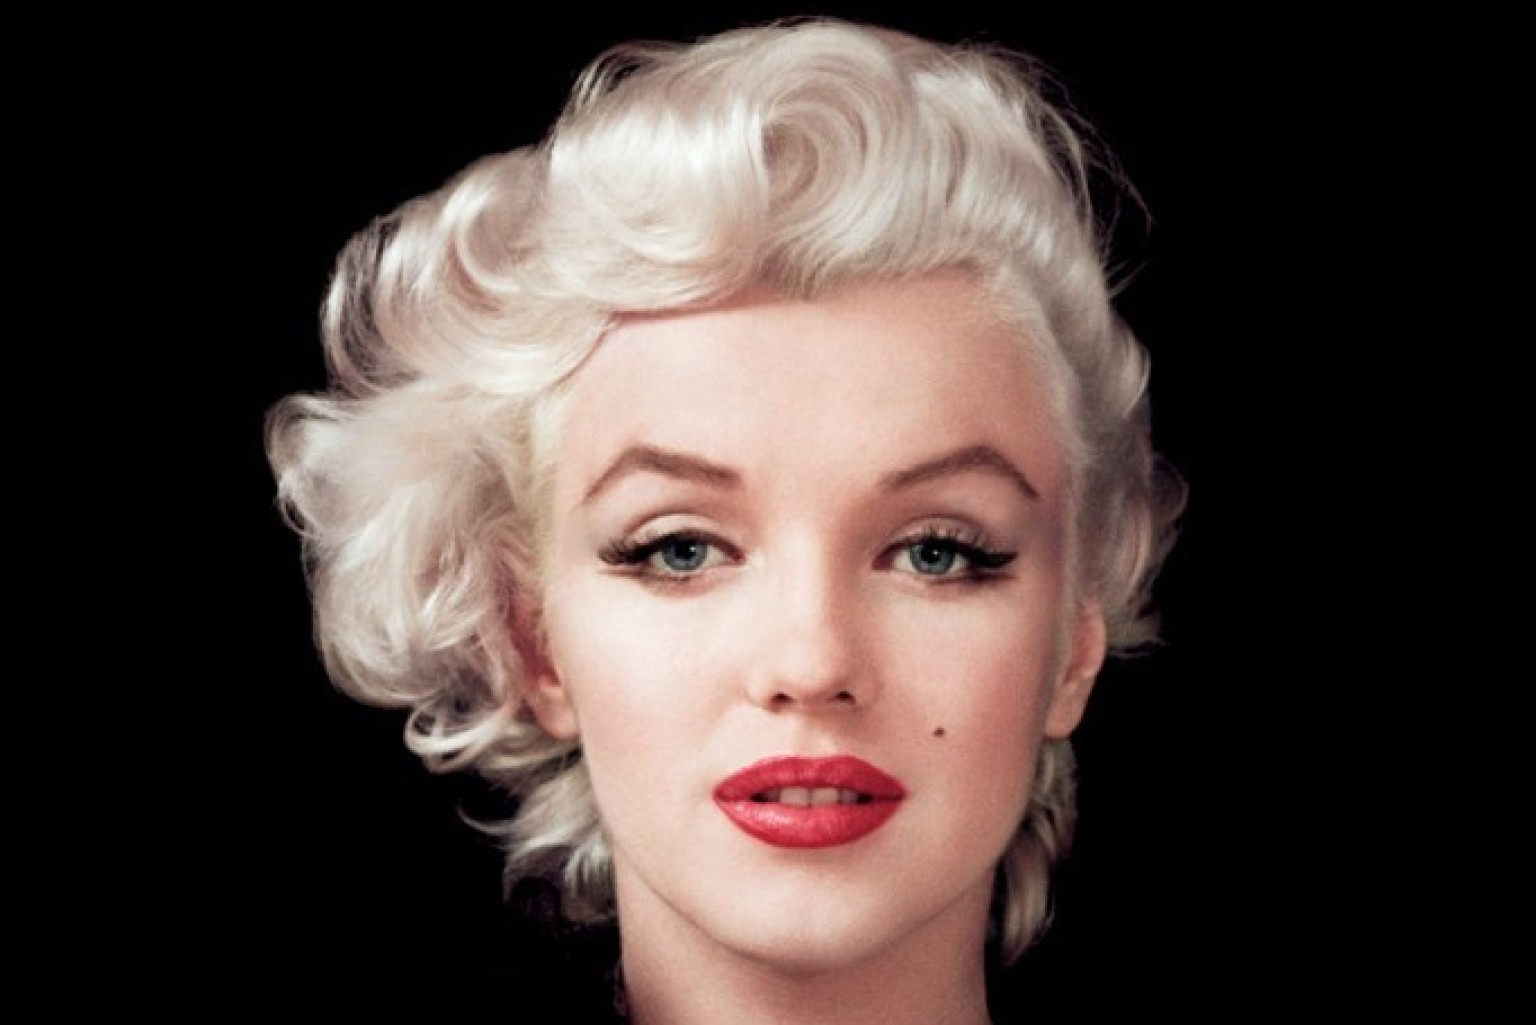 The Beverly Hills Hotel Introduces Suite 100 – The Golden Age Inspired by Marilyn Monroe